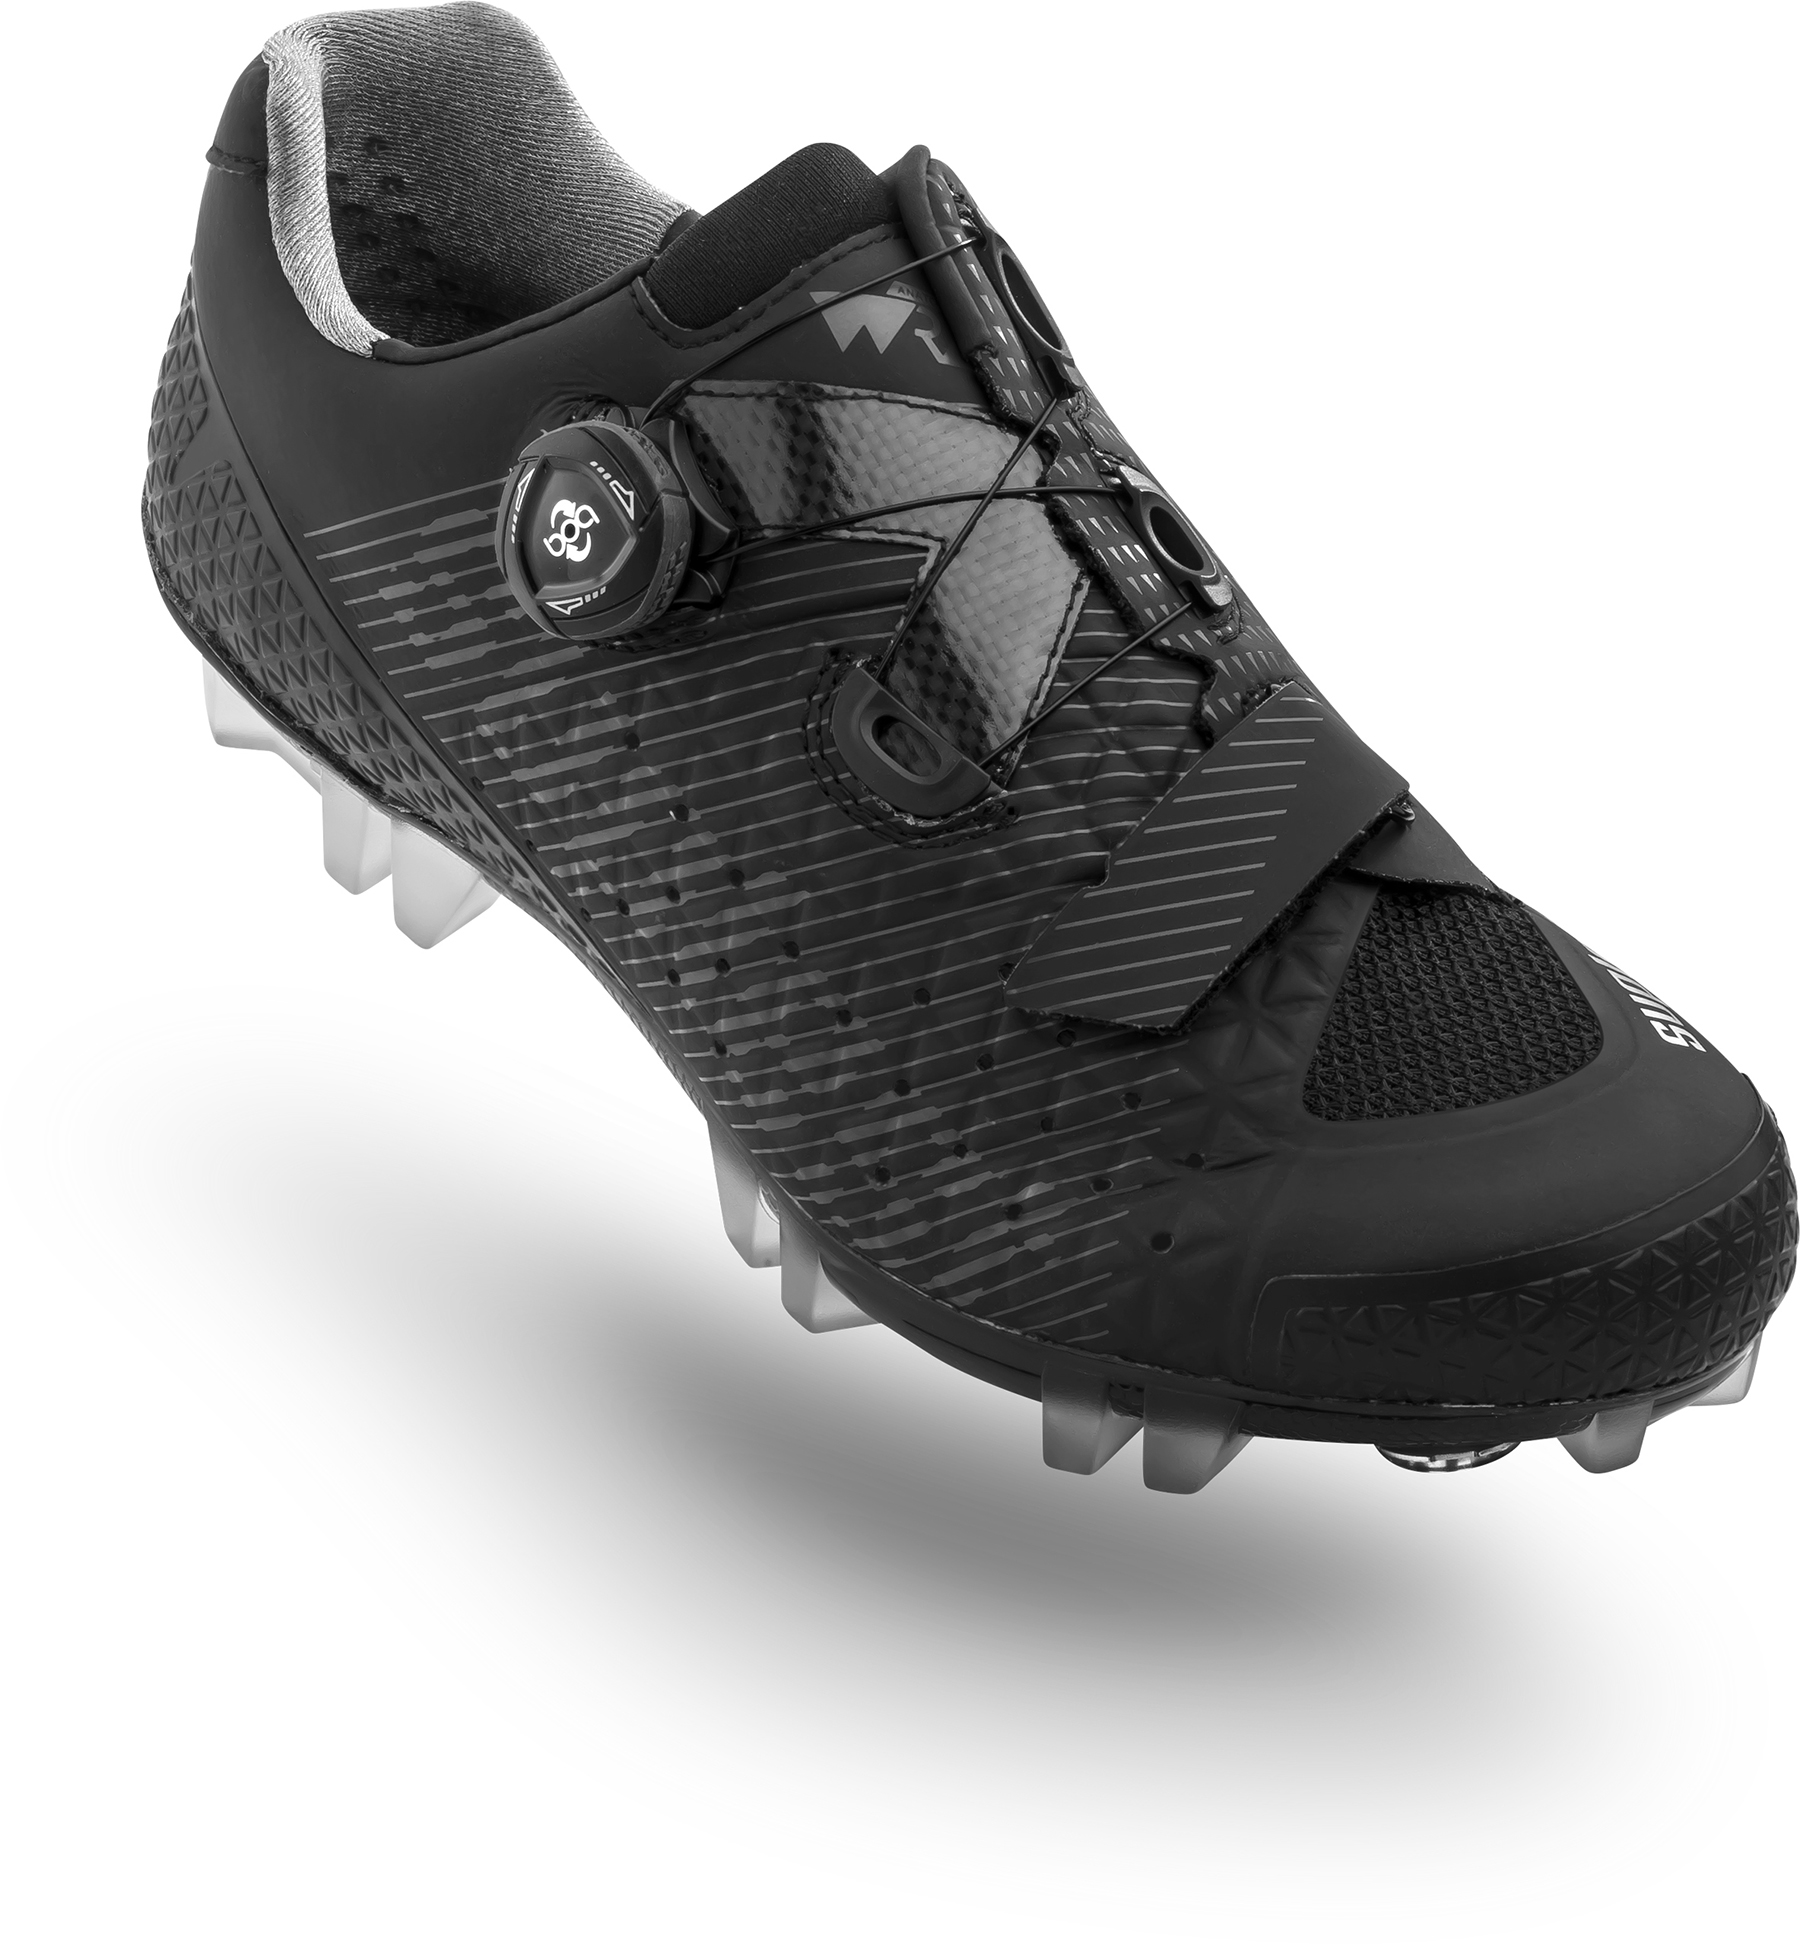 Suplest Edge3 BOA IP1 Carbon Comp Off Road Shoe | Shoes and overlays